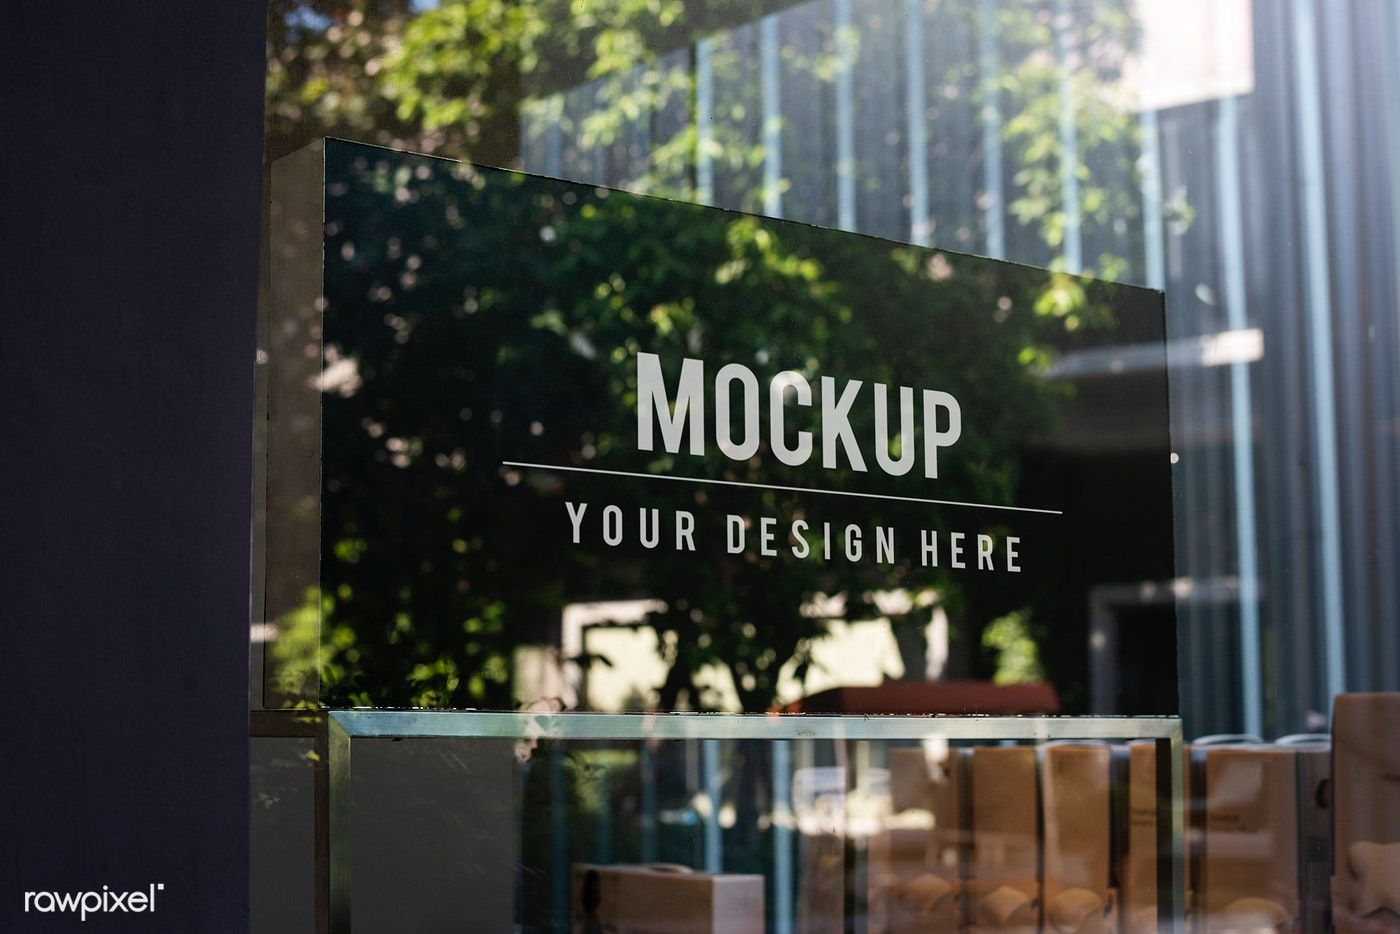 Window Sign Mockup In A Shop Free Image By Rawpixel Com Ake Sign Mockup Window Signs Window Signage